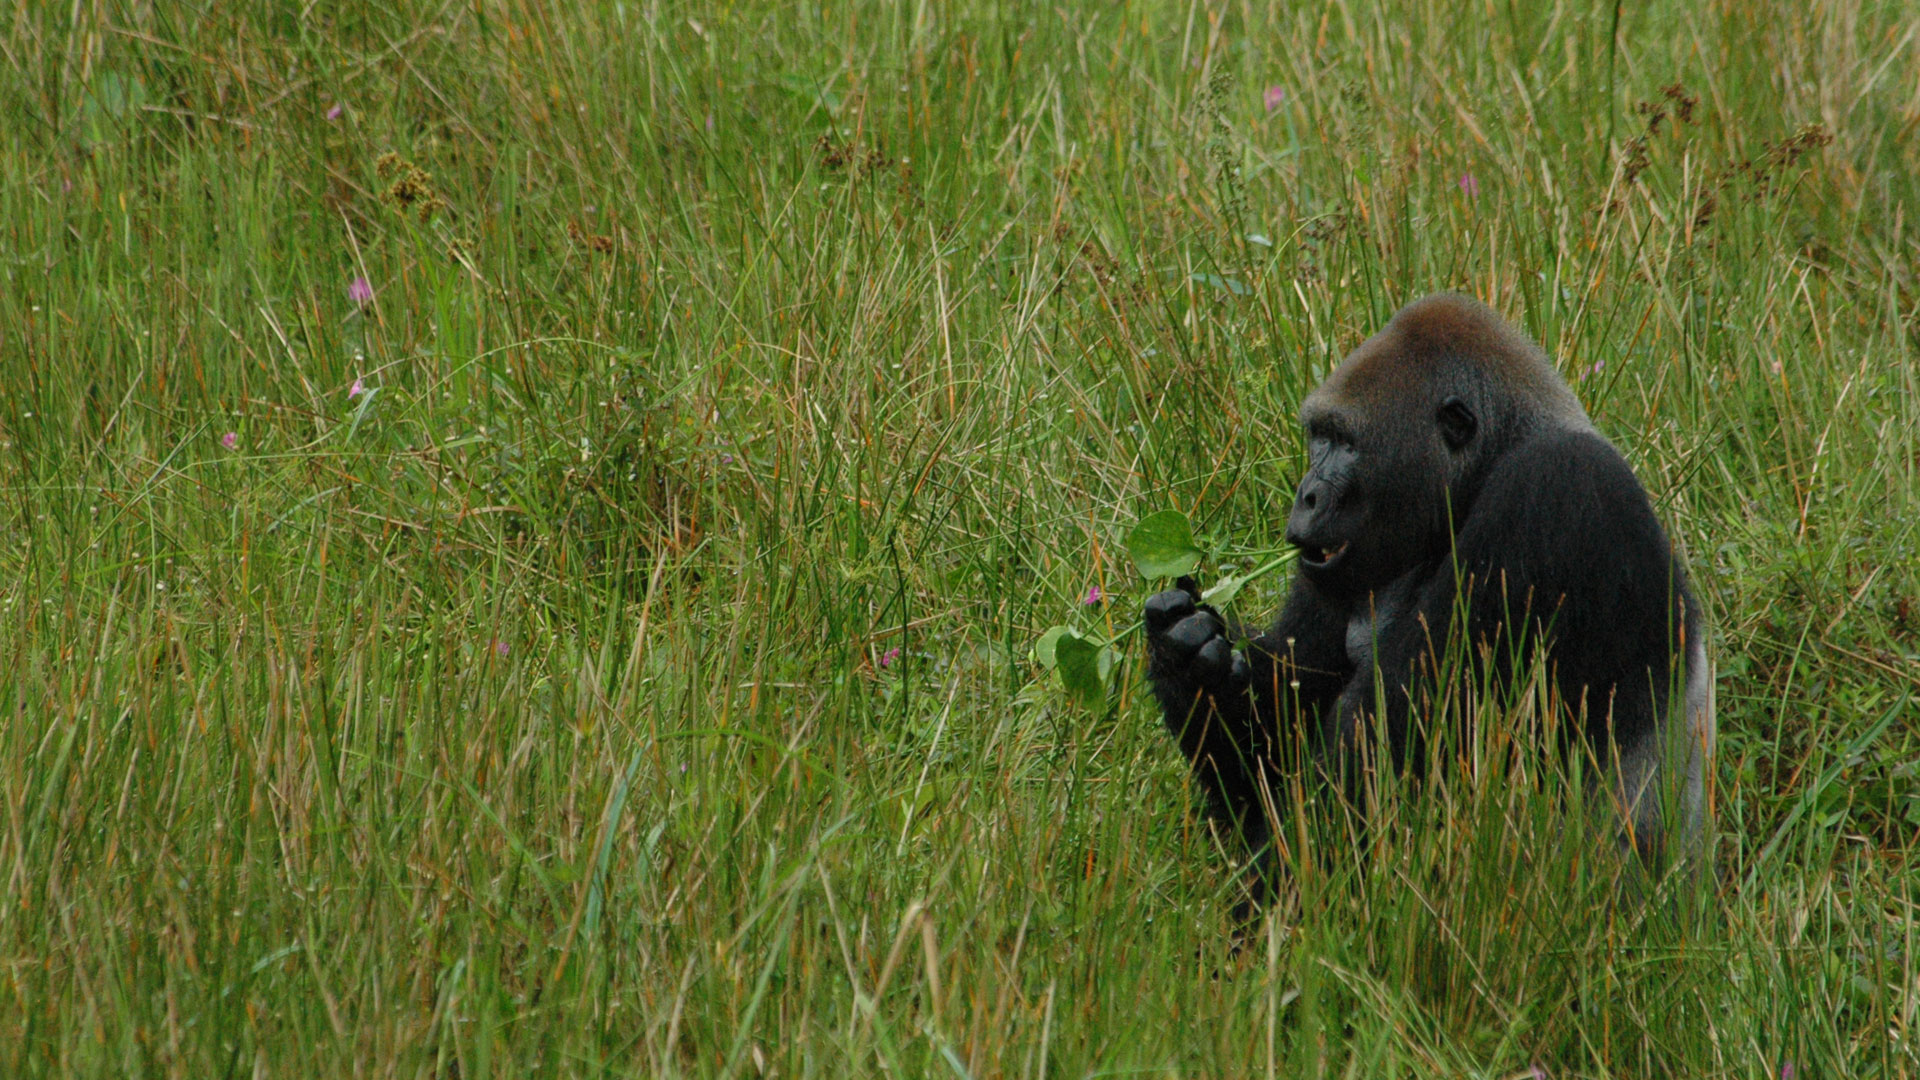 Lowland gorilla, Republic of Congo